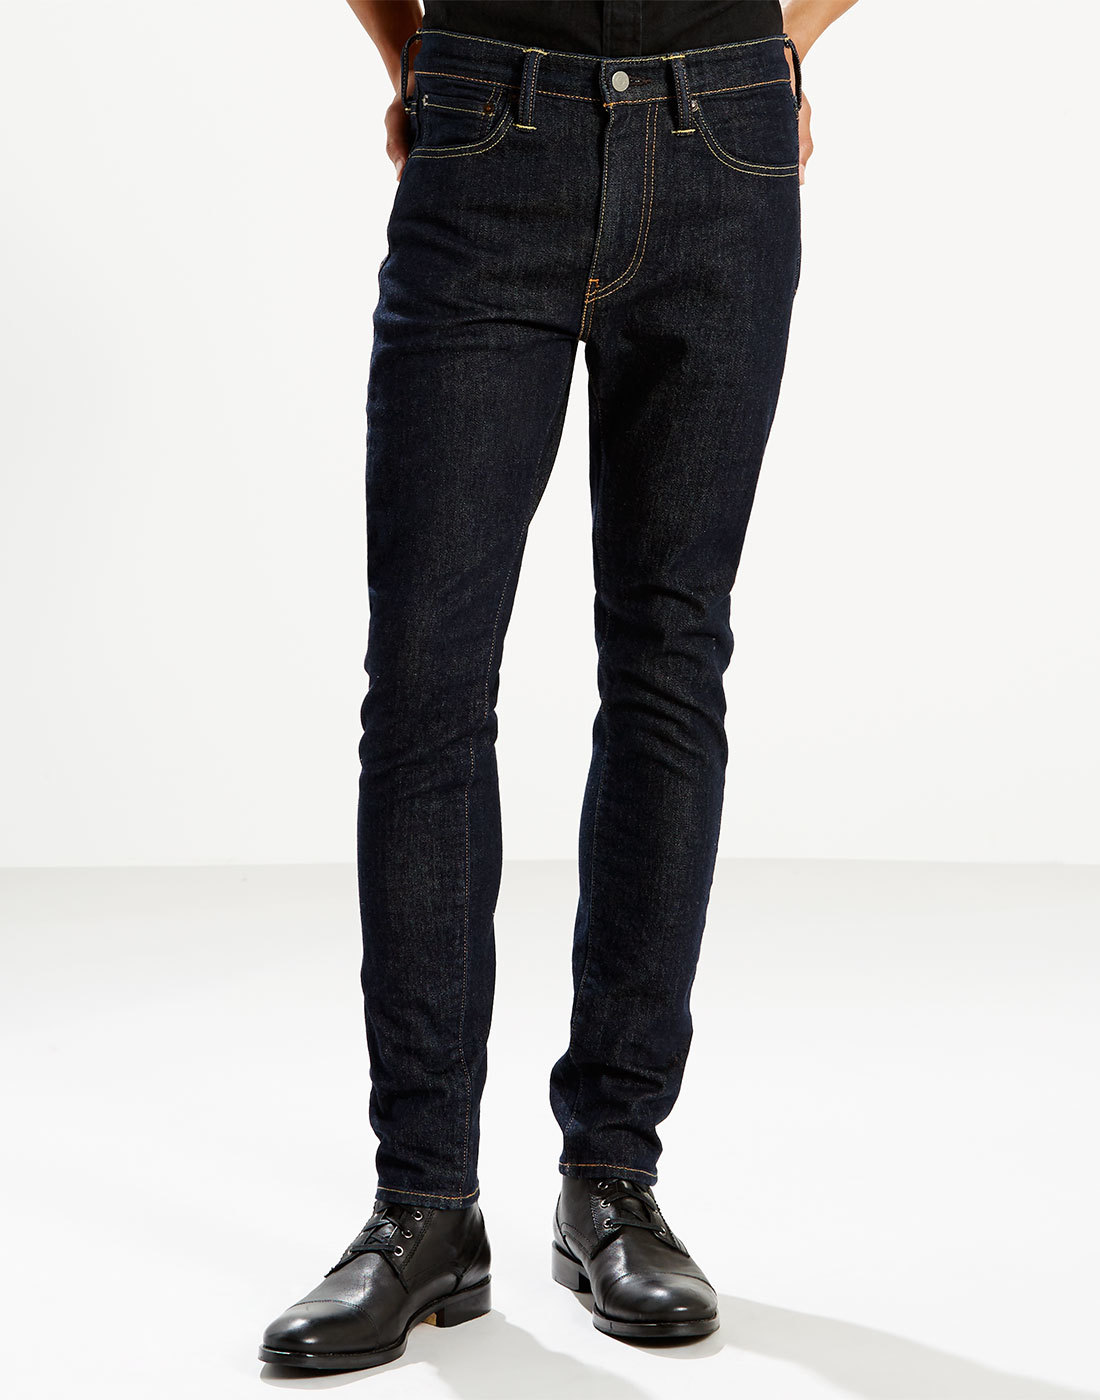 LEVI'S® 519 Retro Mod Extreme Skinny Jeans Pipe